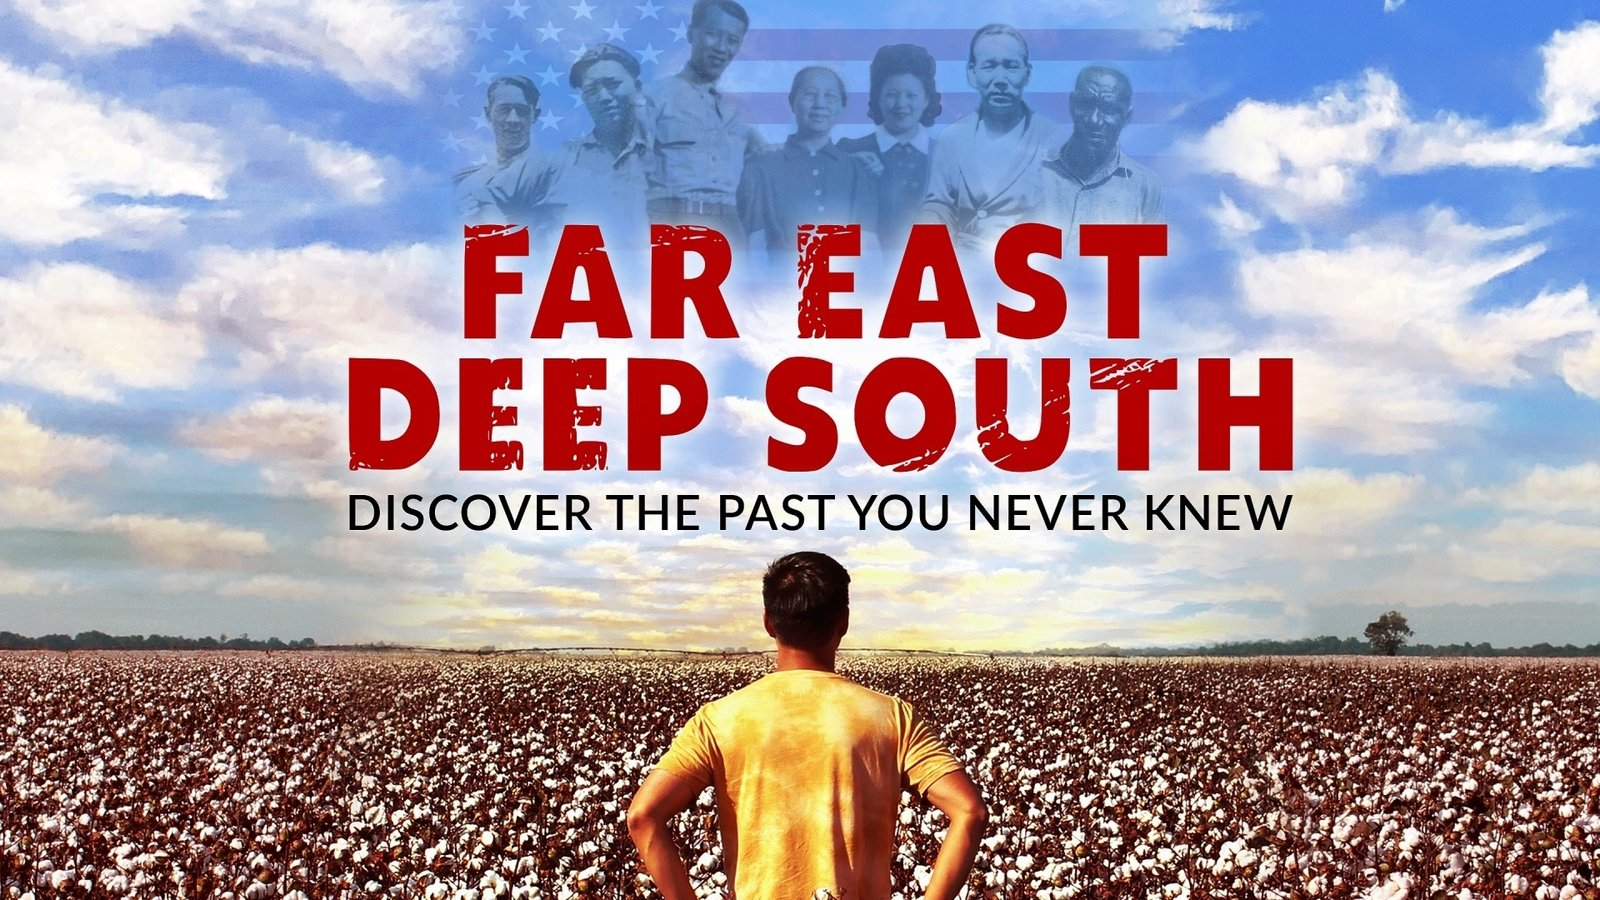 Far East Deep South